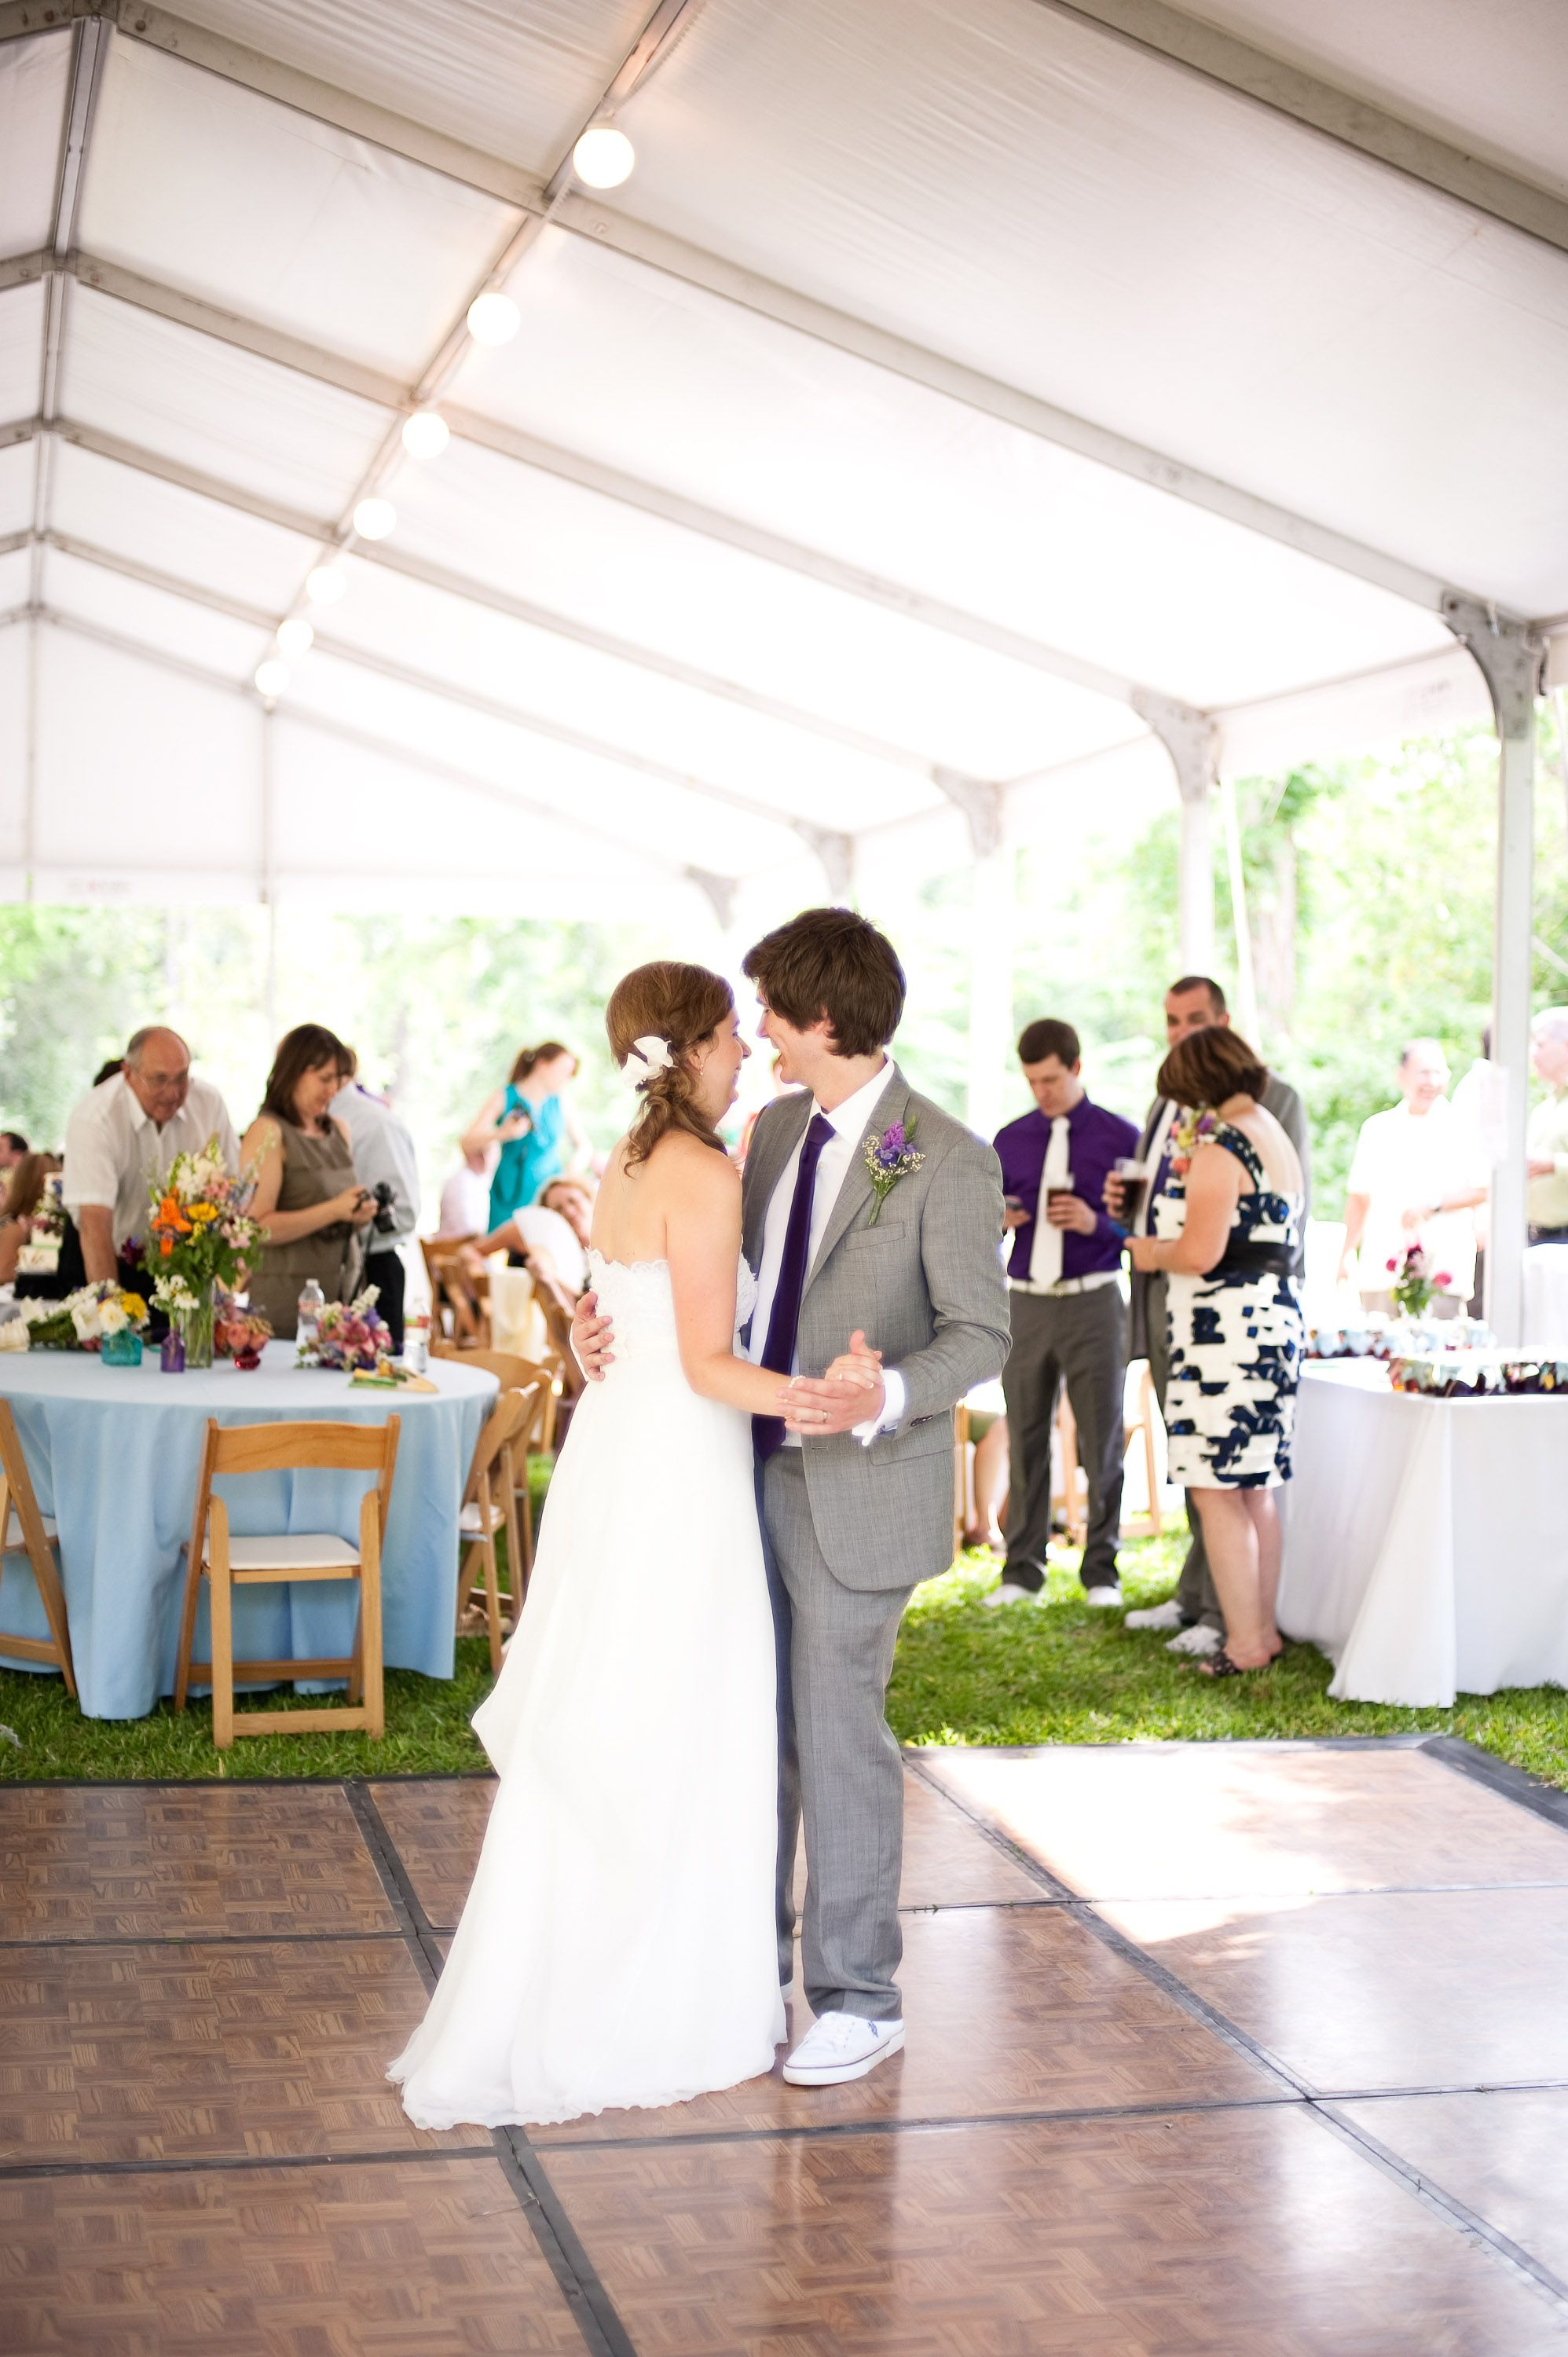 Reception On The Houston Arboretum Lawn Outdoor Wedding In Nature